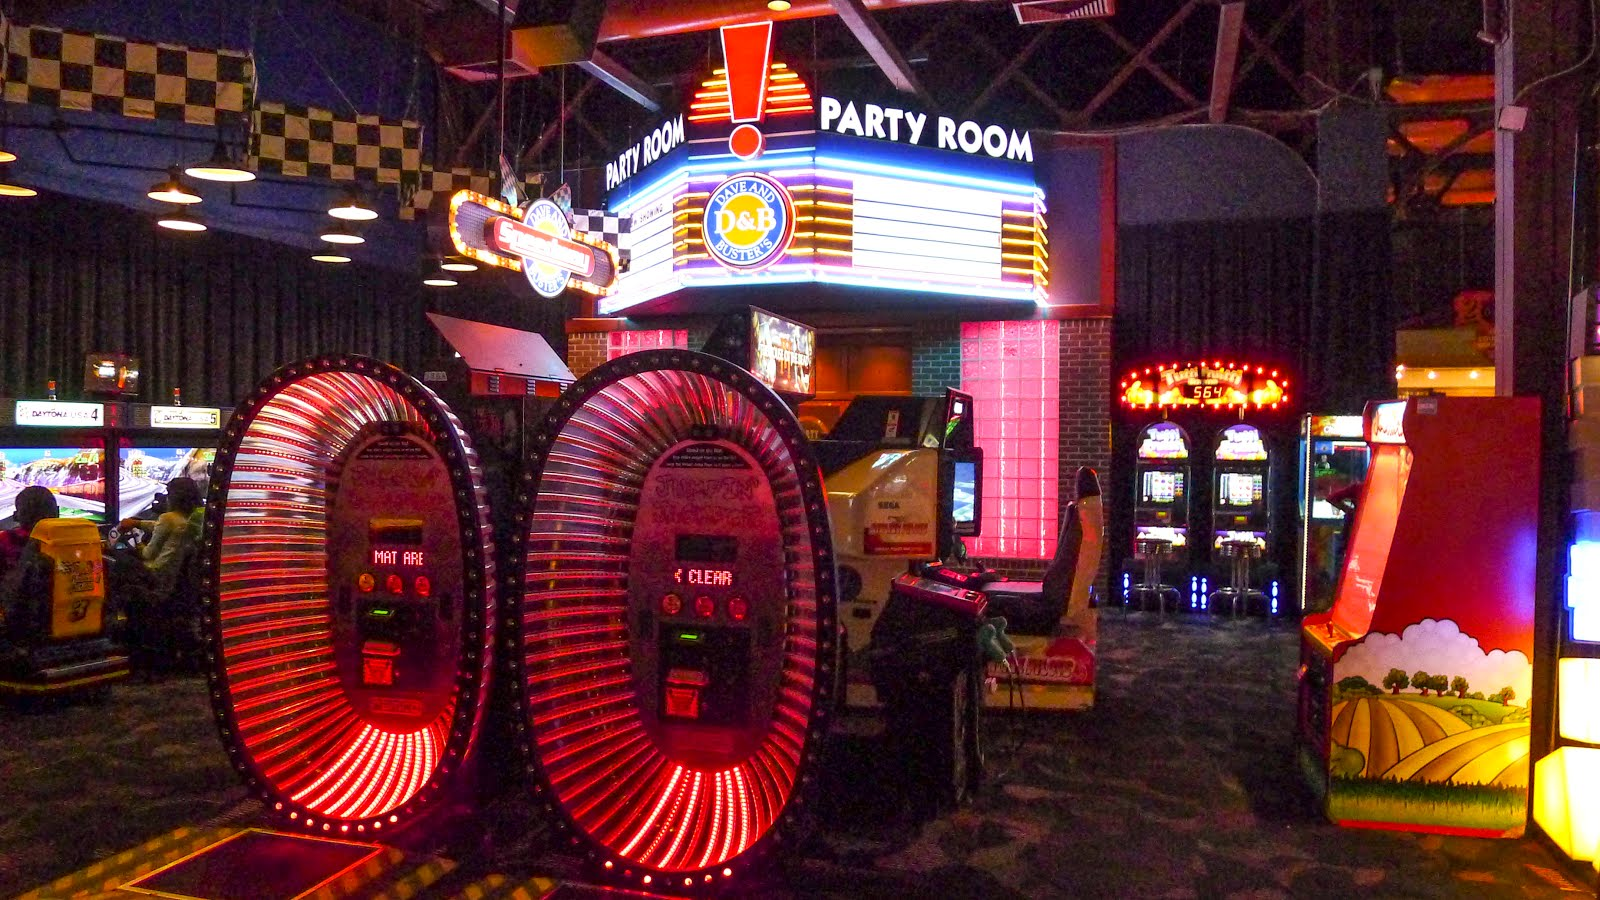 How much are games at dave n busters